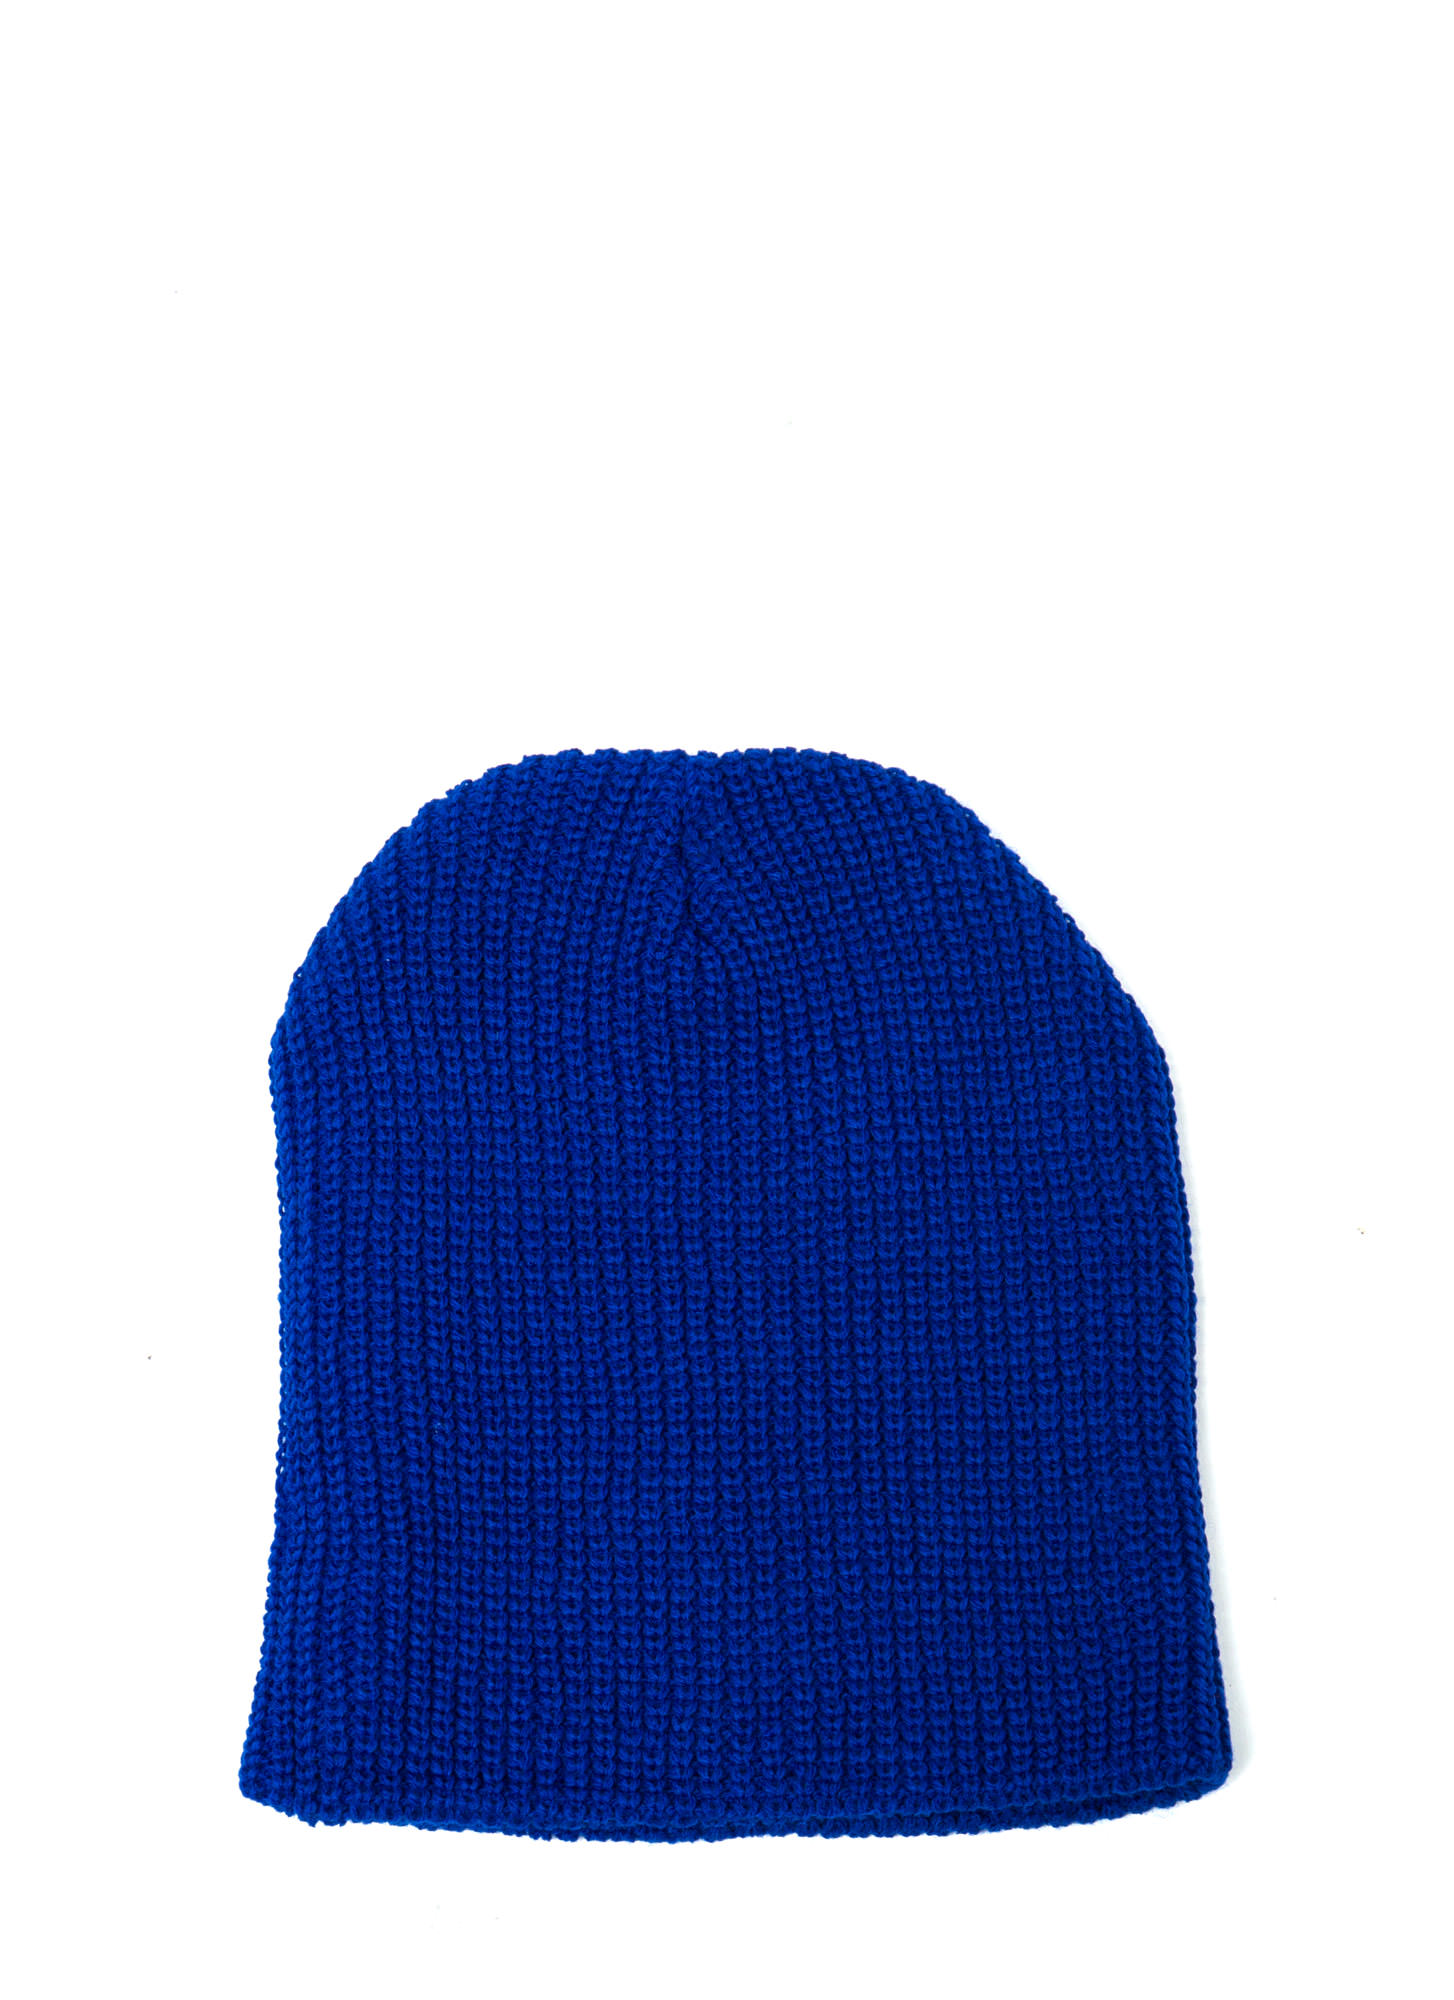 Heads Up Knit Beanie ROYAL